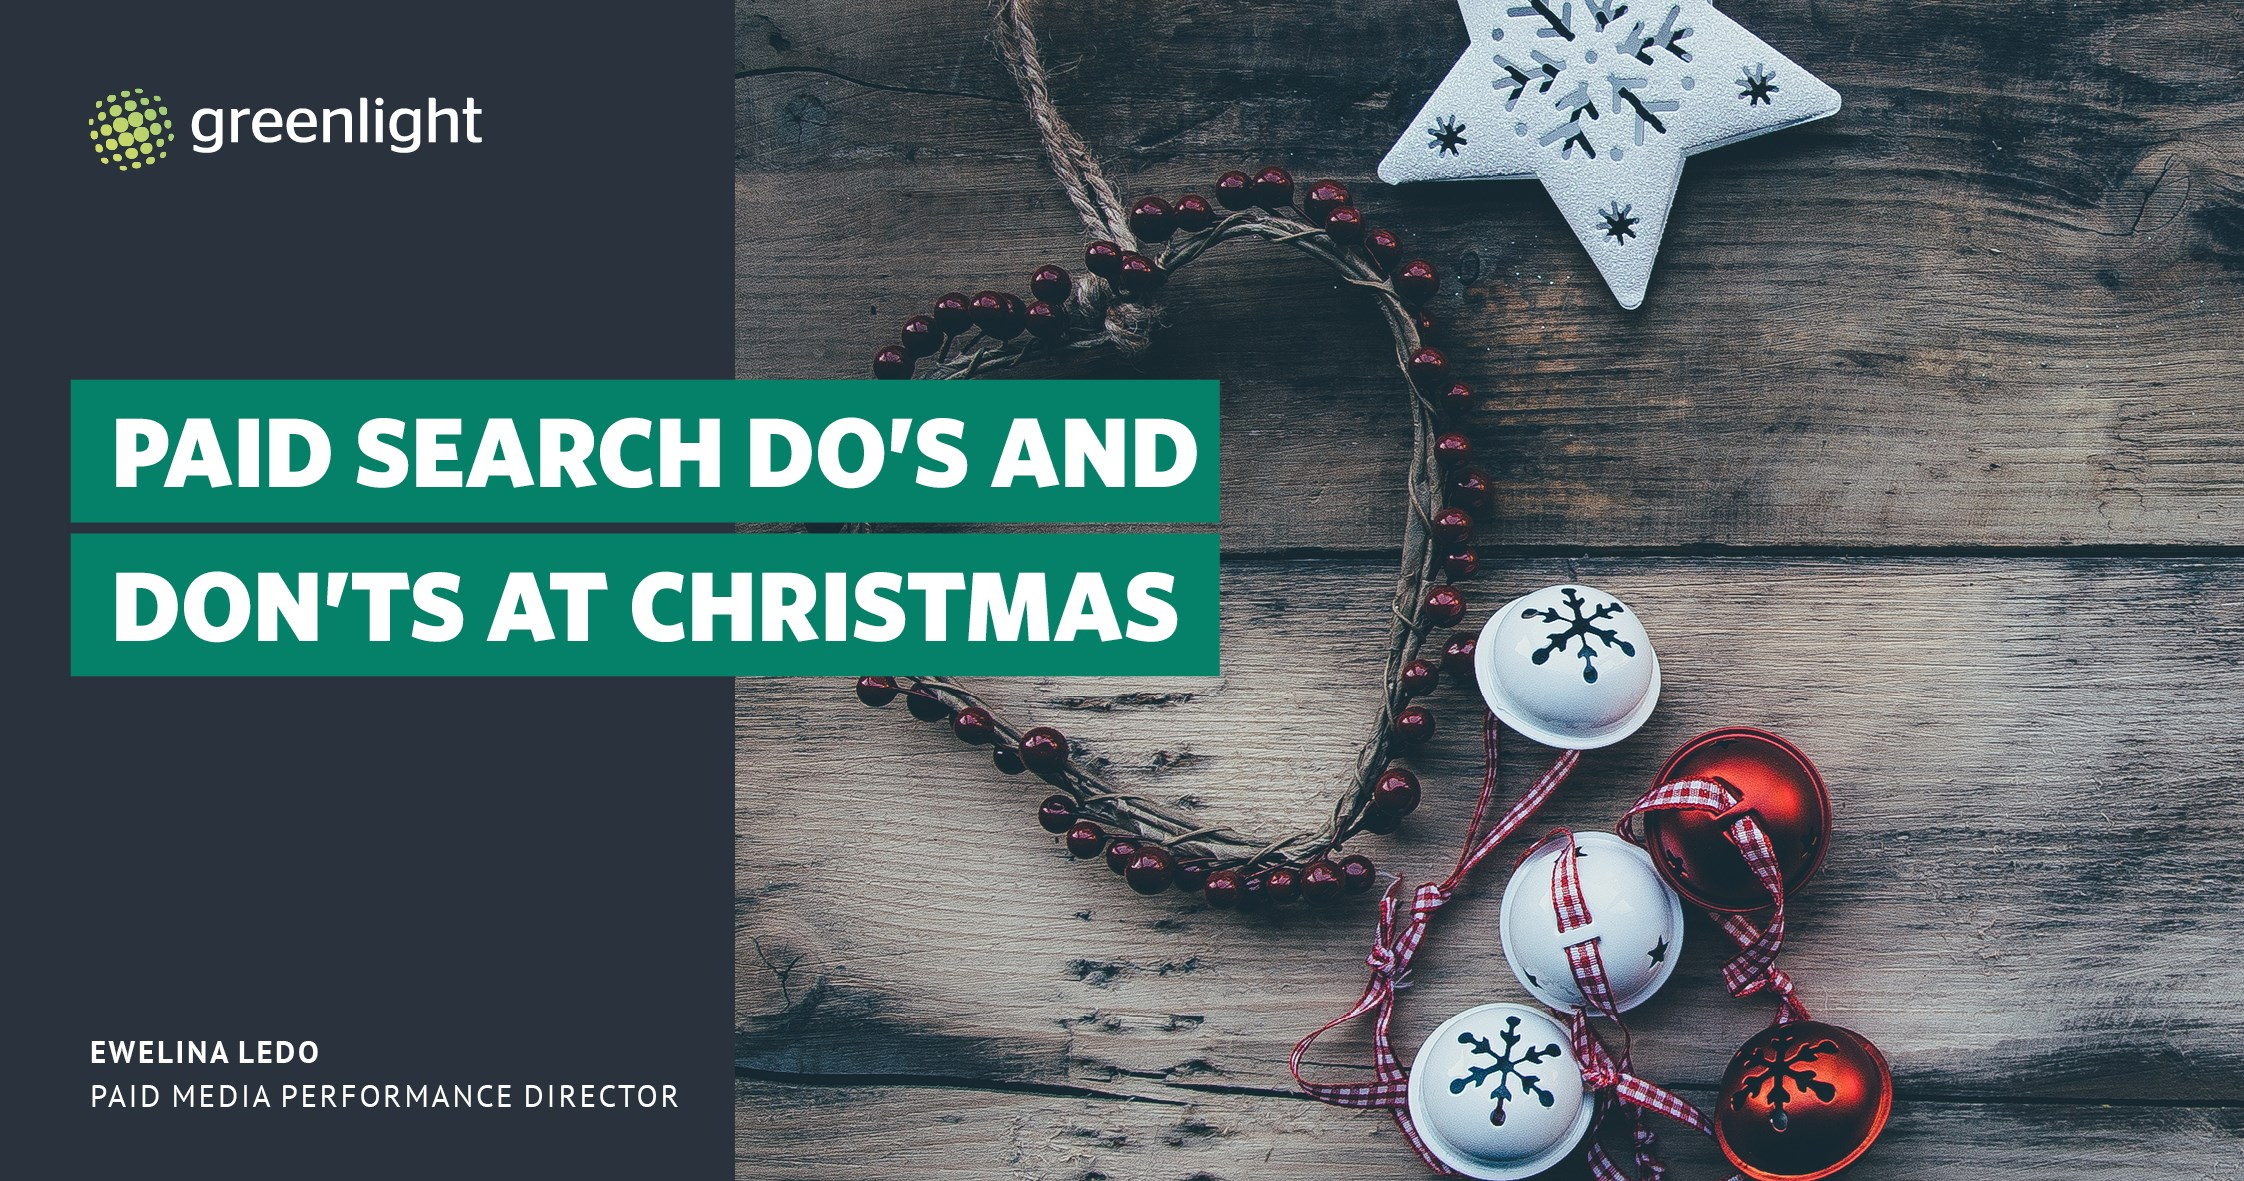 Paid Search Do's And Don'ts At Christmas